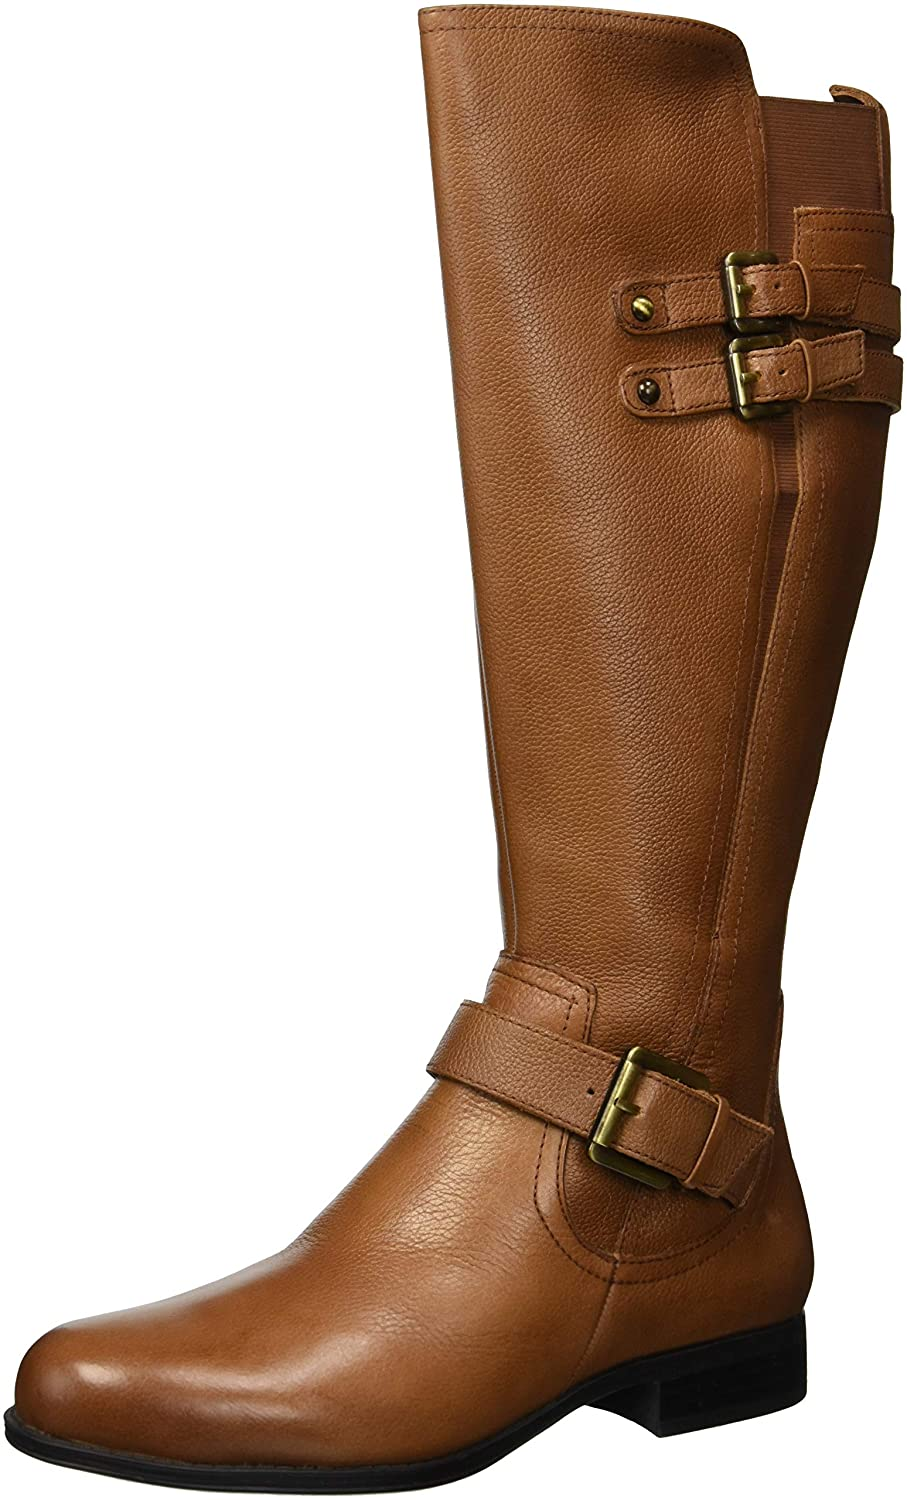 Women's Jessie Knee-High Triple-Buckle Straps Low-Heel Tan Real Leather Boots - DeluxeAdultCostumes.com